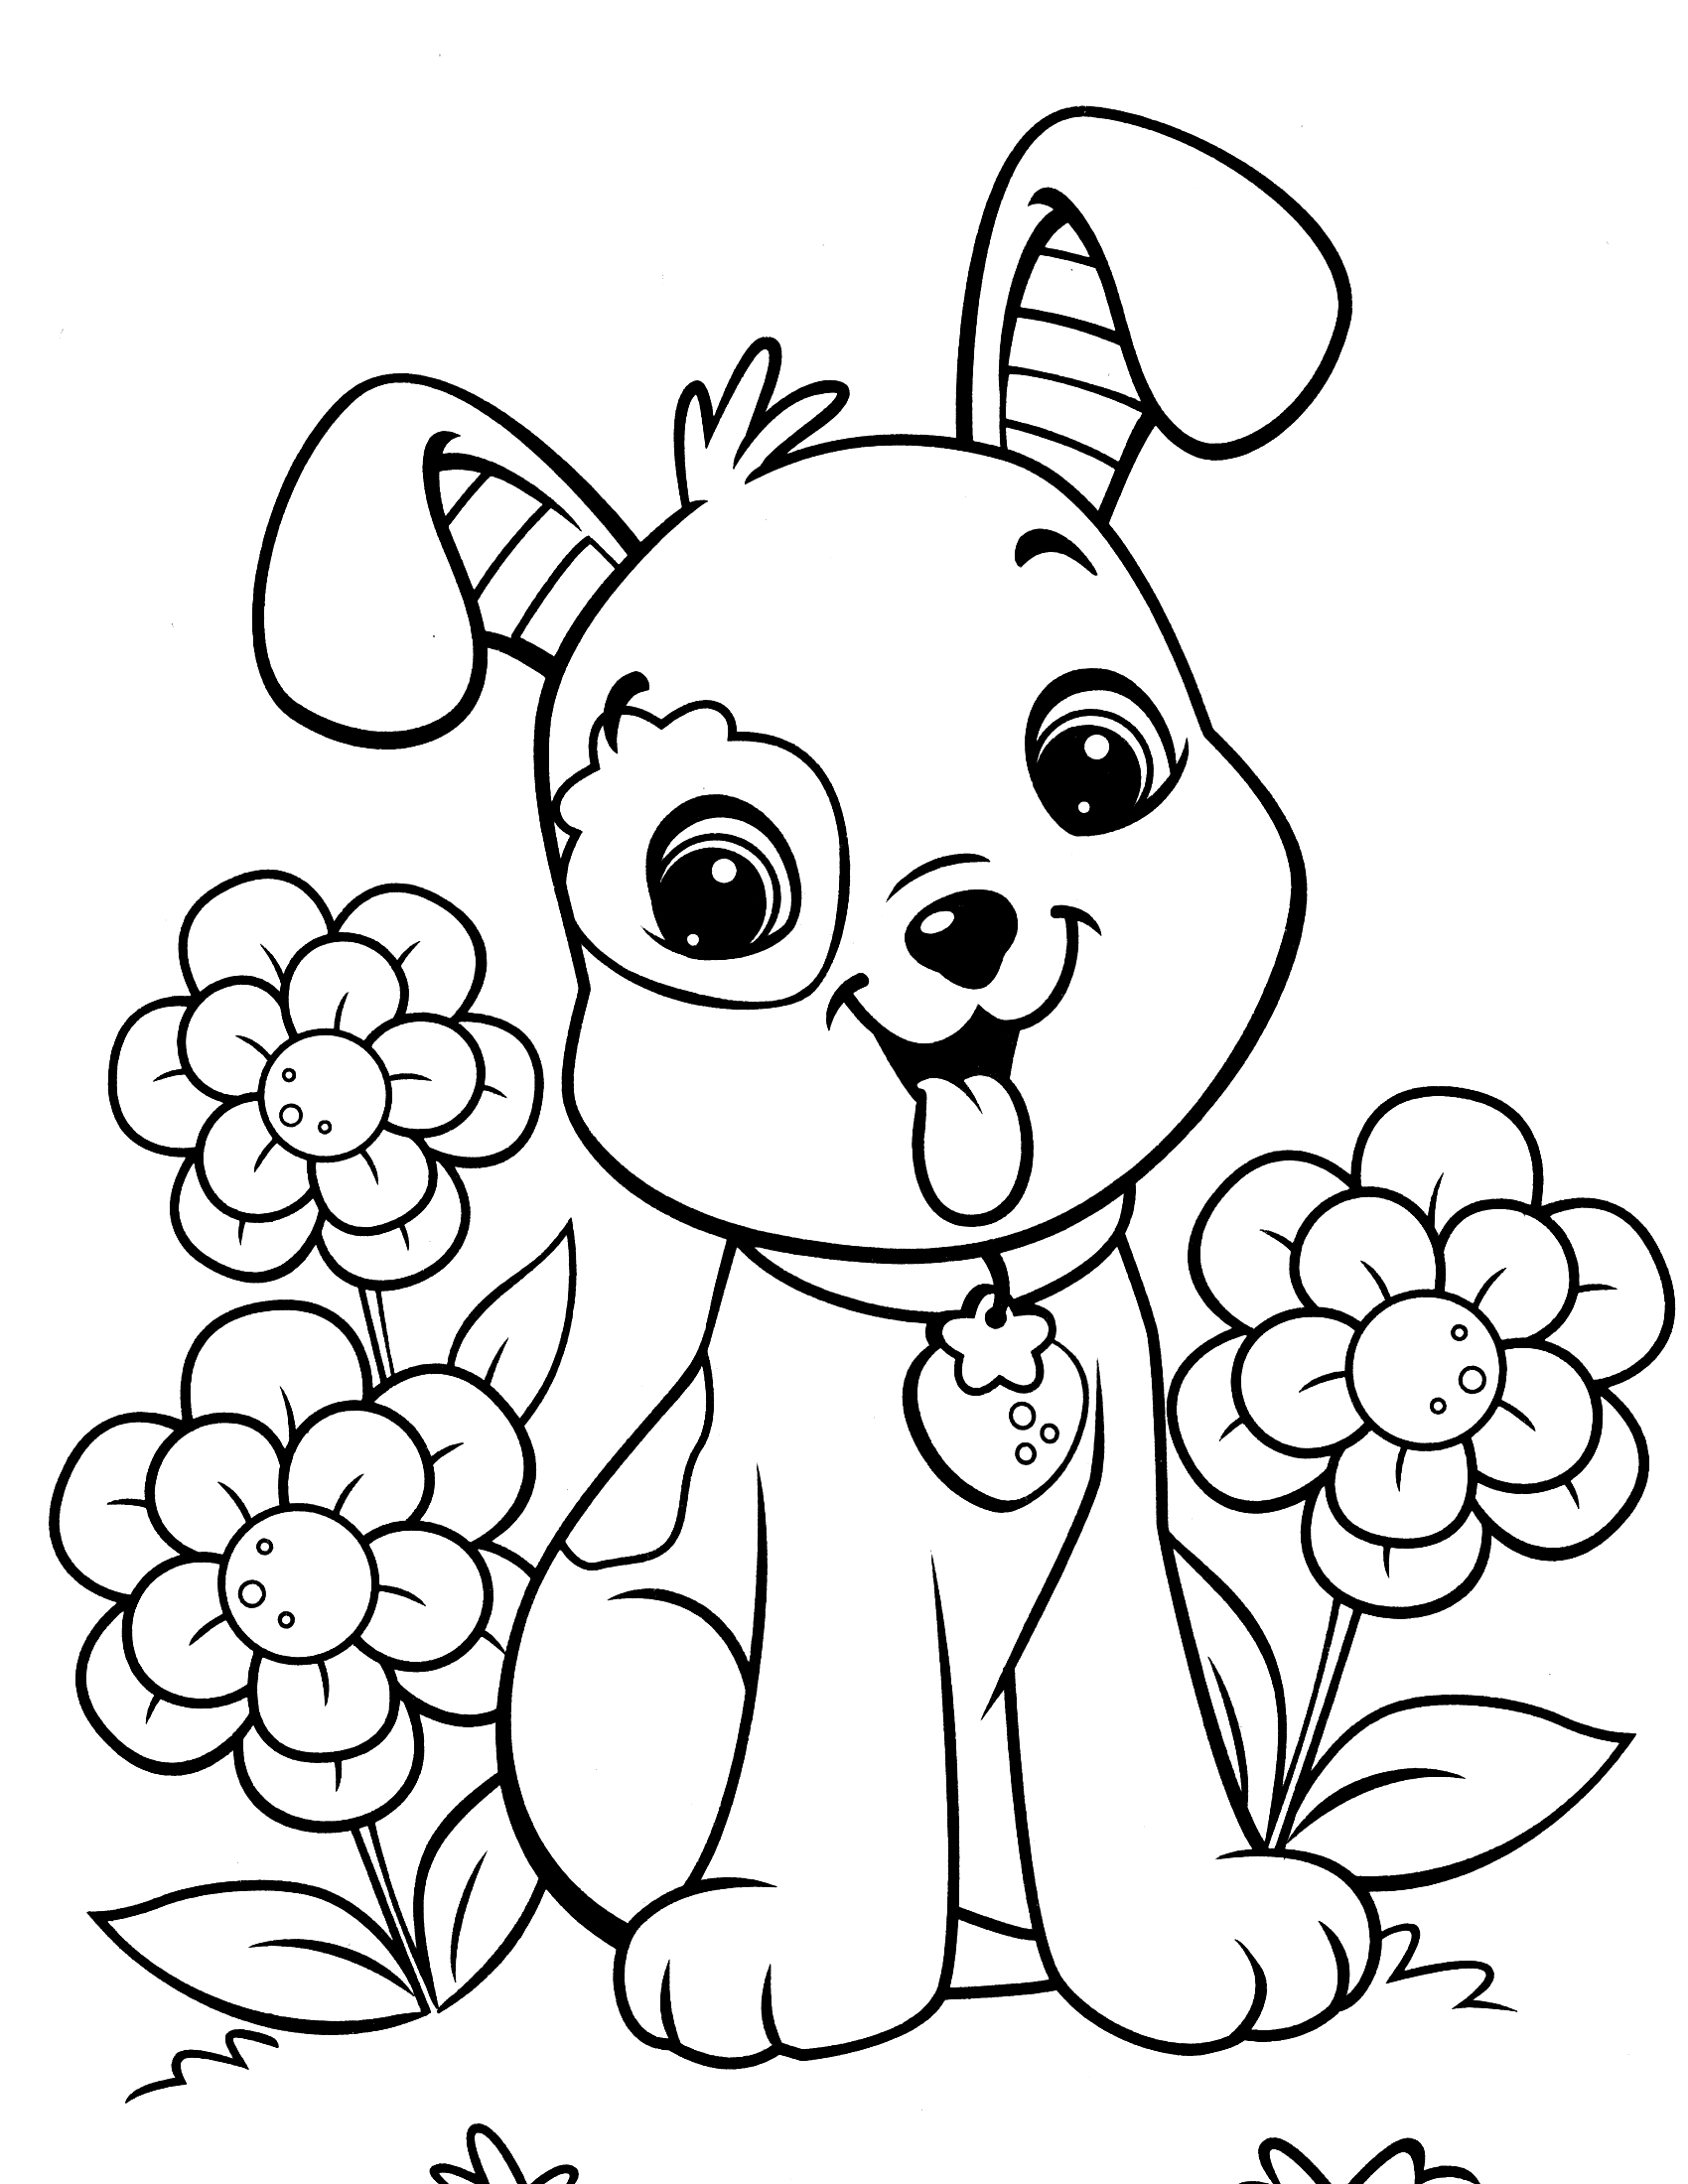 coloring sheet dog dog coloring pages for kids preschool and kindergarten coloring sheet dog